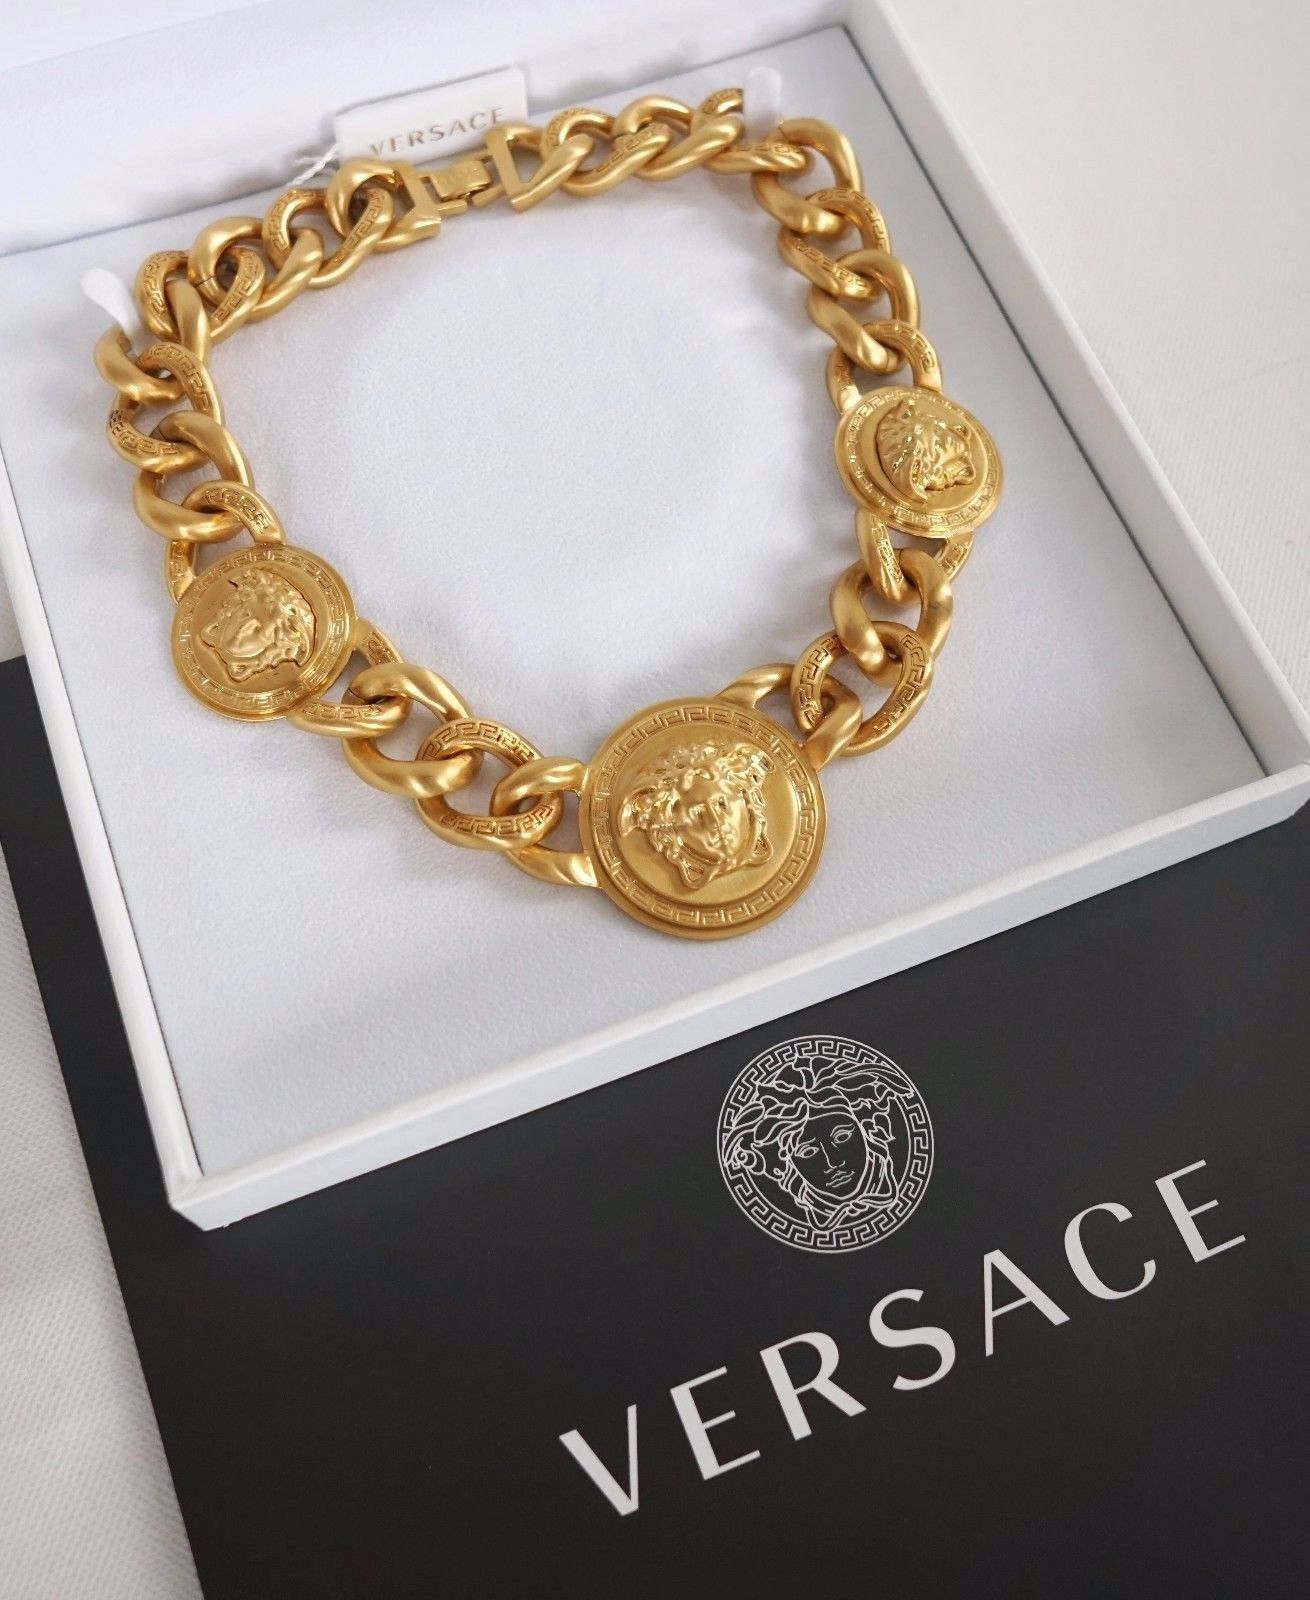 Versace Iconic 3 Medusa medallions chain necklace_2